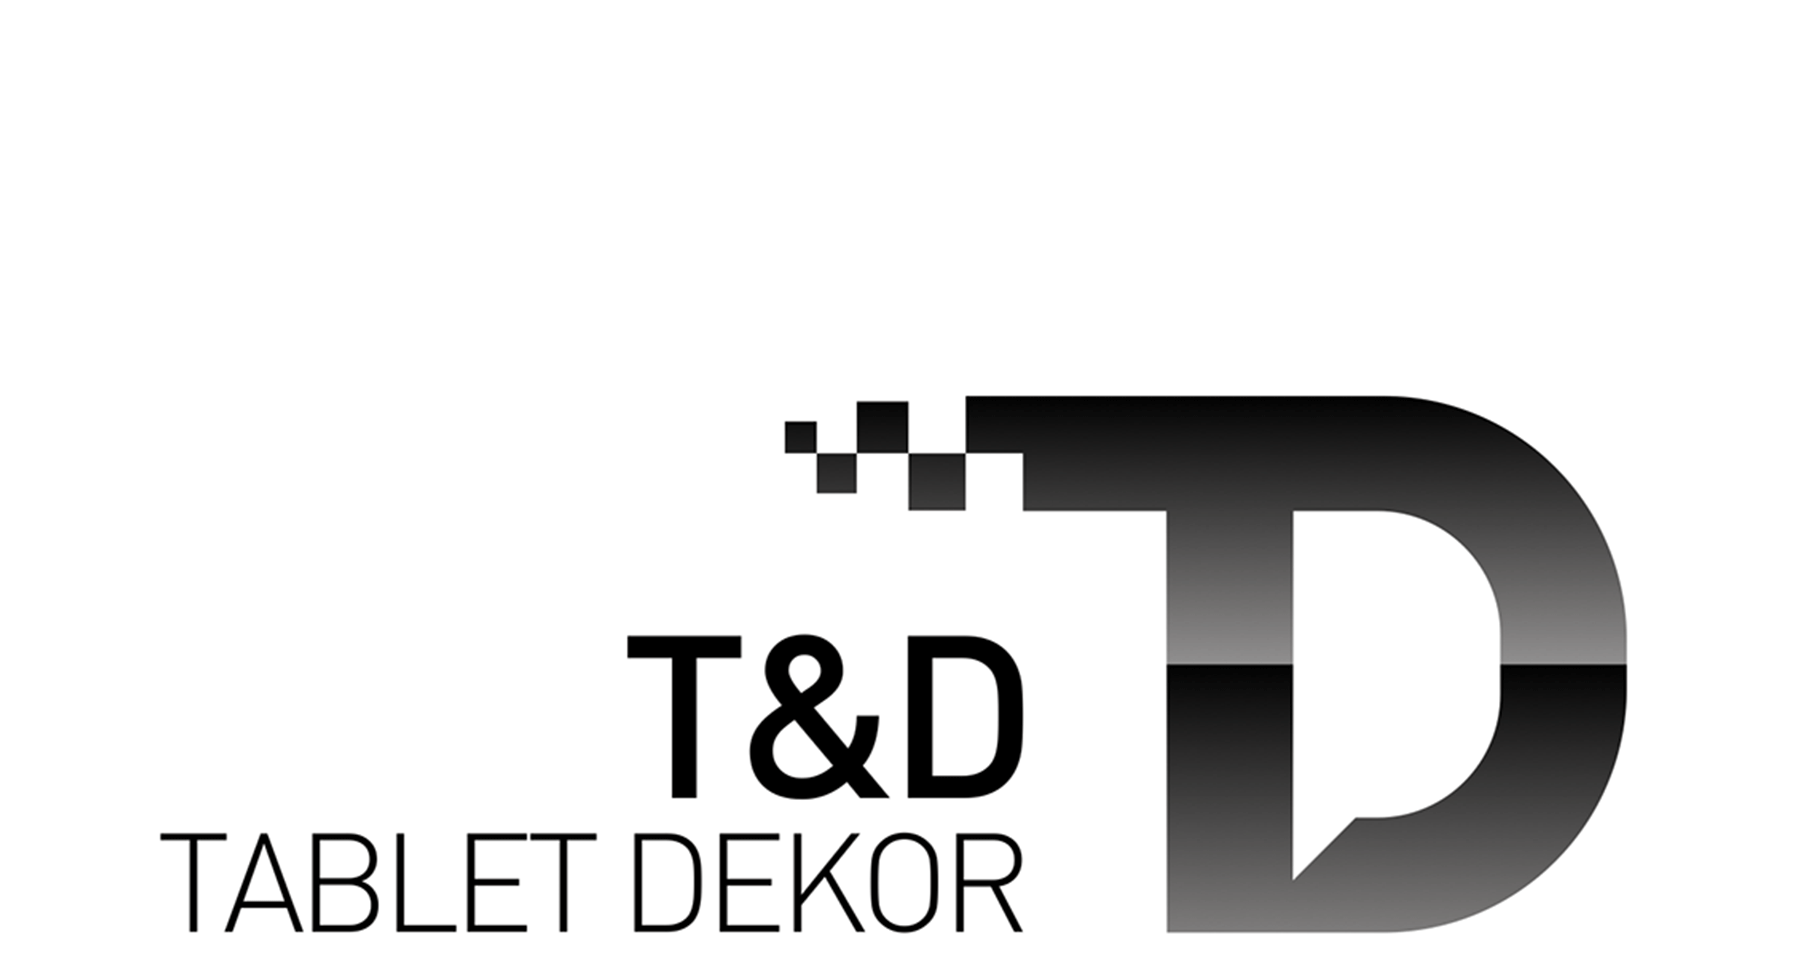 Tablet Dekor – Softwareentwicklung